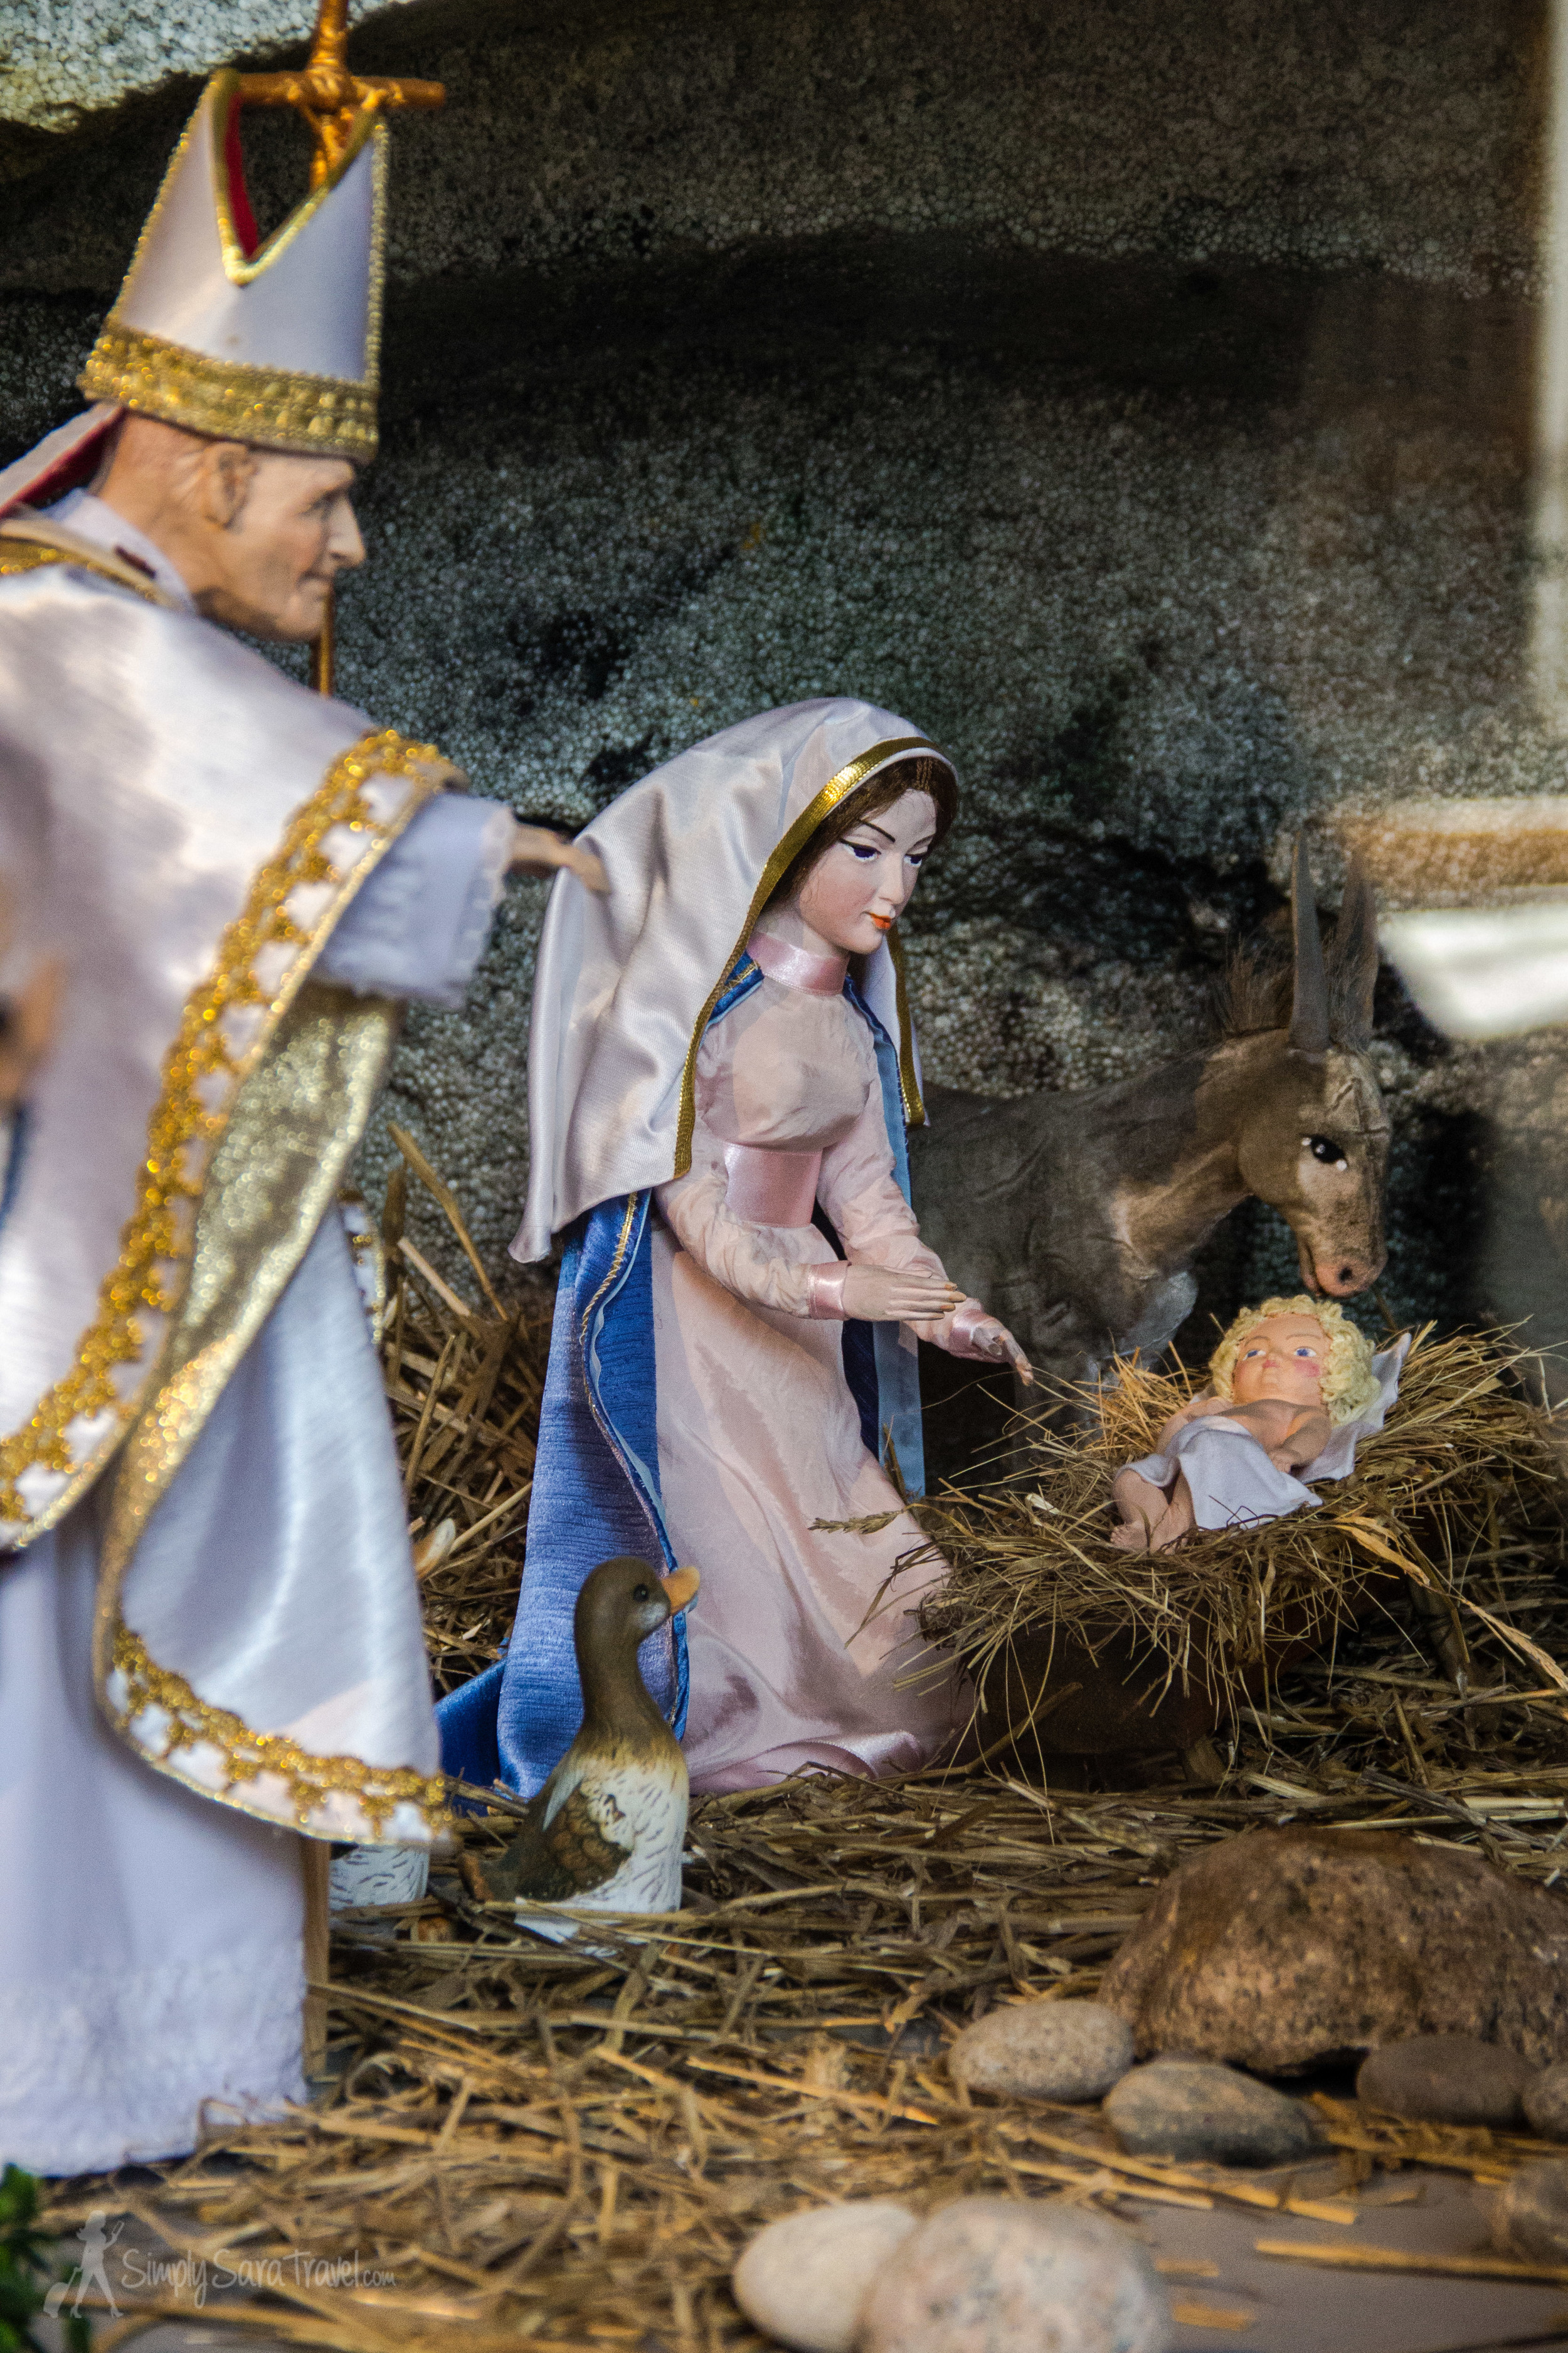 Pope John Paul II at the manger scene at the Church of the Holy Trinity in Gdańsk. I'm telling you, he shows up everywhere in Poland!